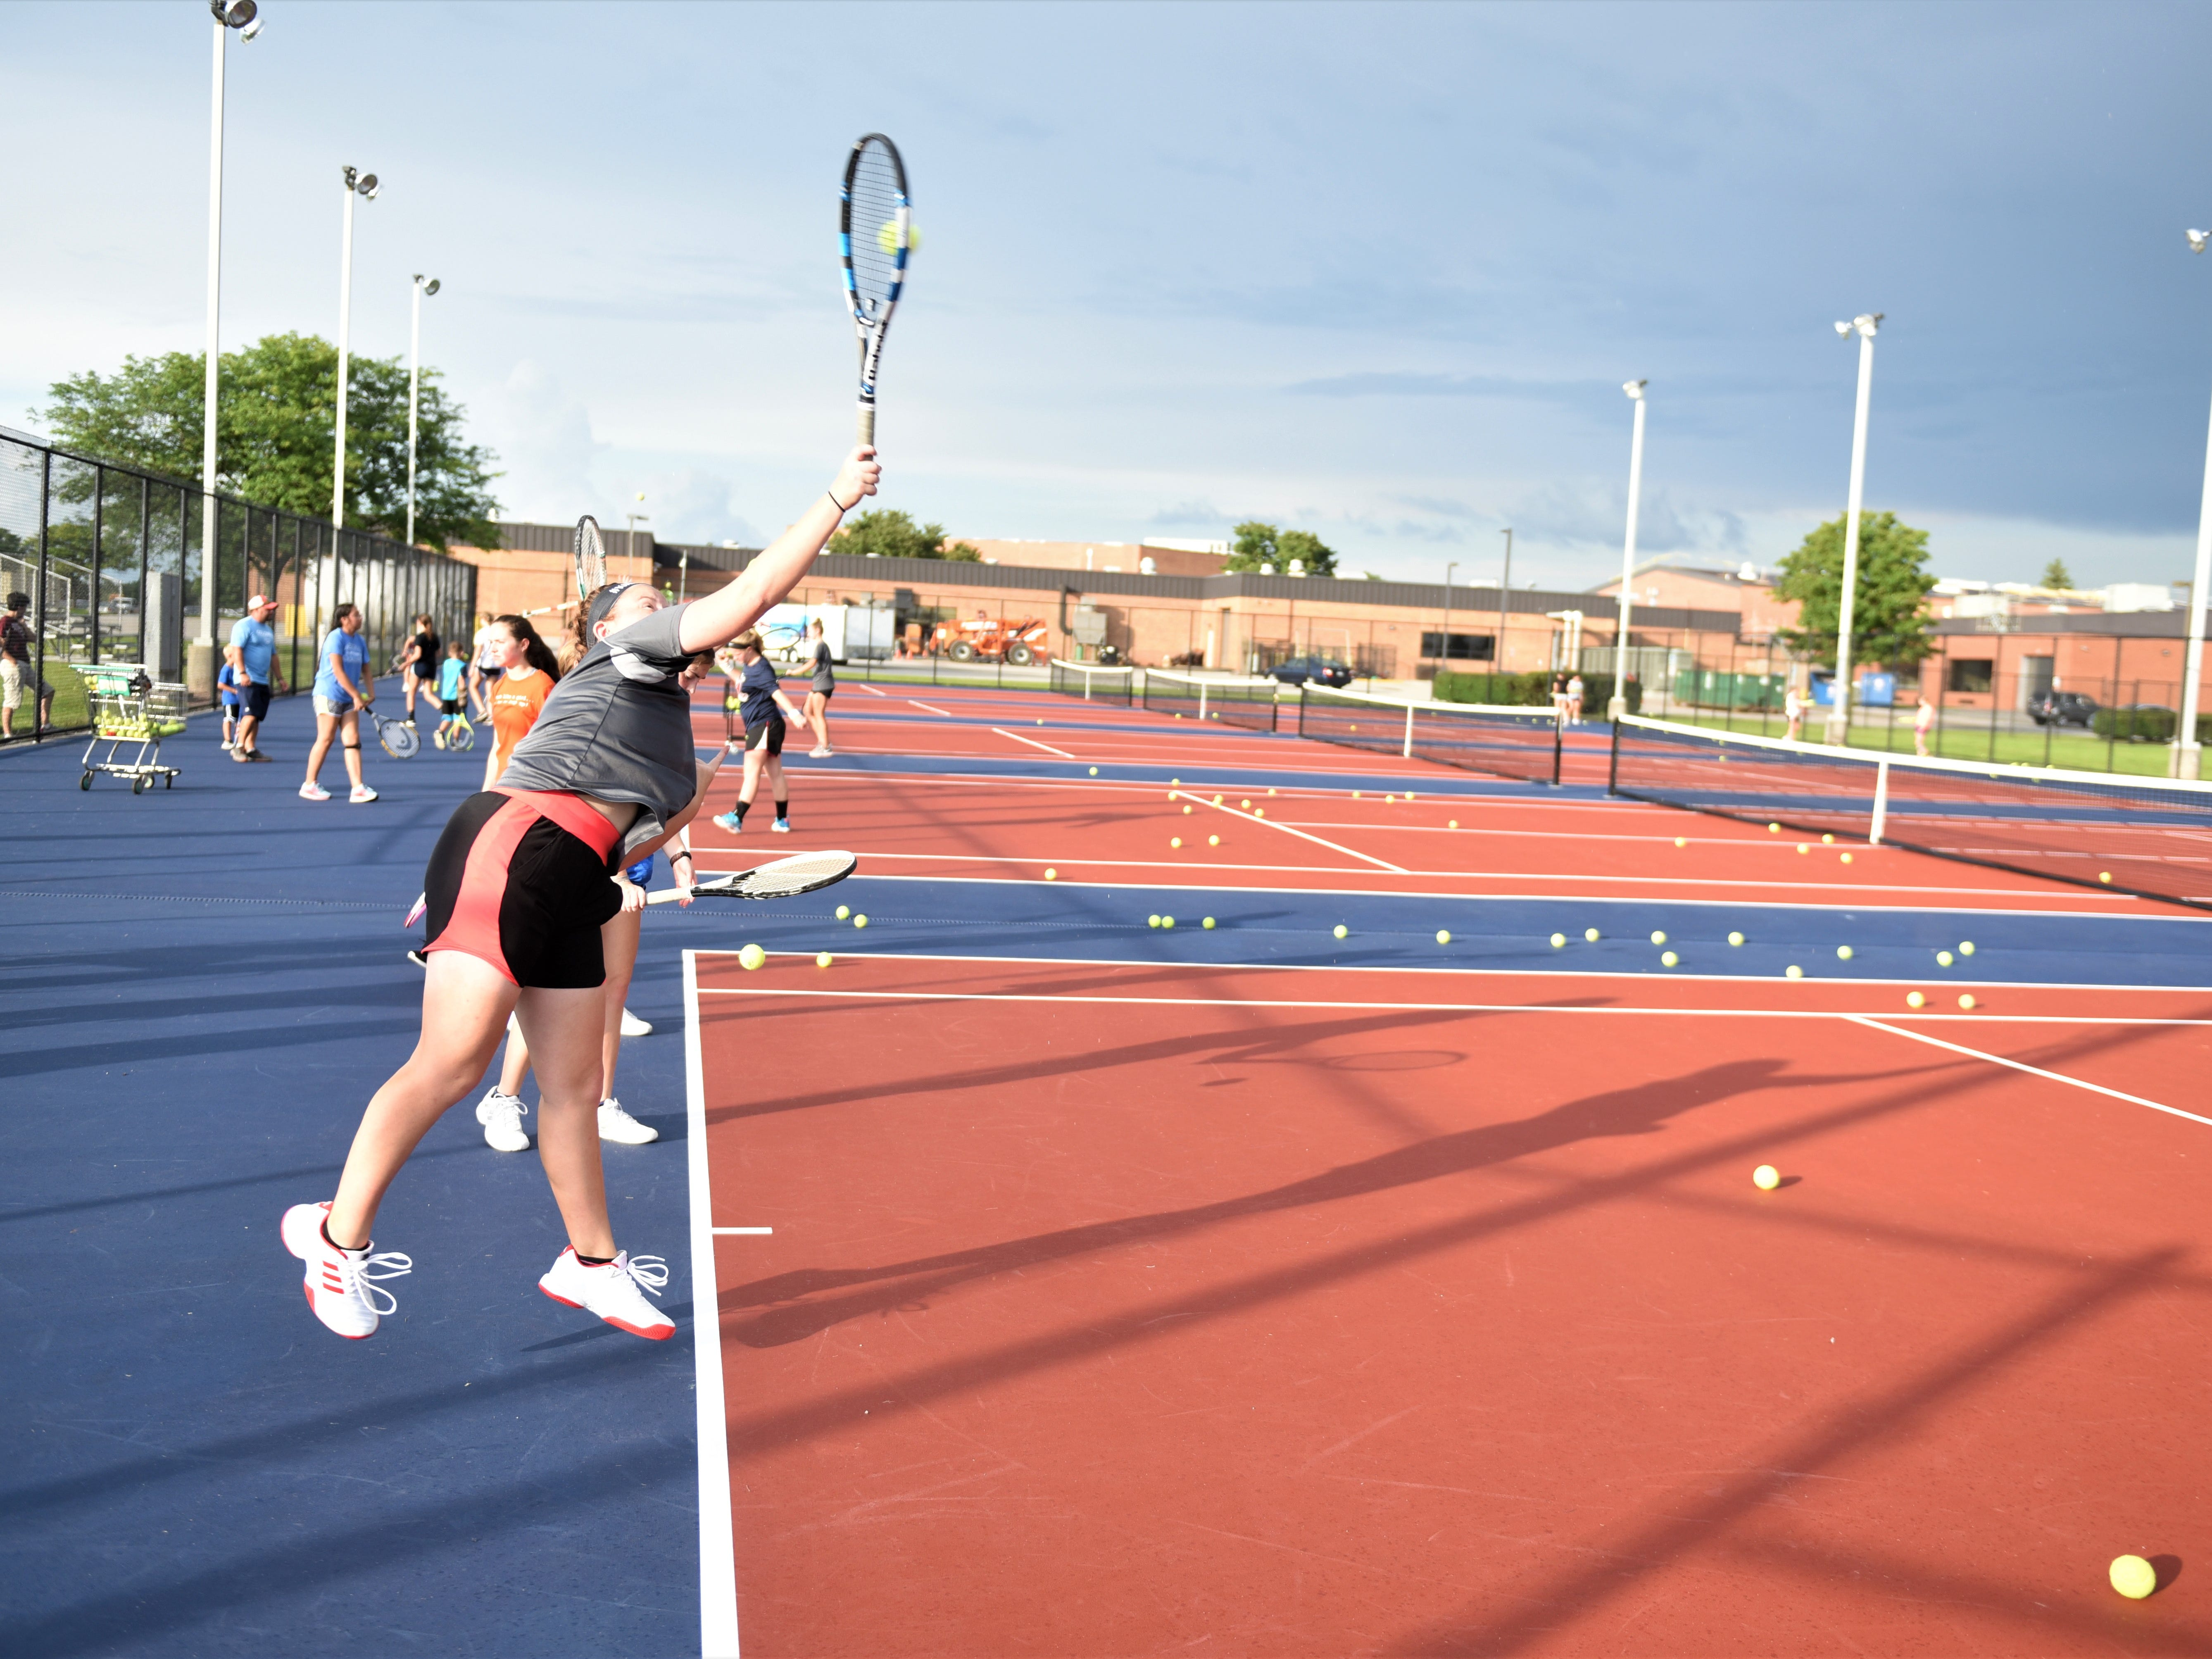 New Oxford junior, Molly Socks, is practicing her serve on the first day of fall sports on Aug. 13.